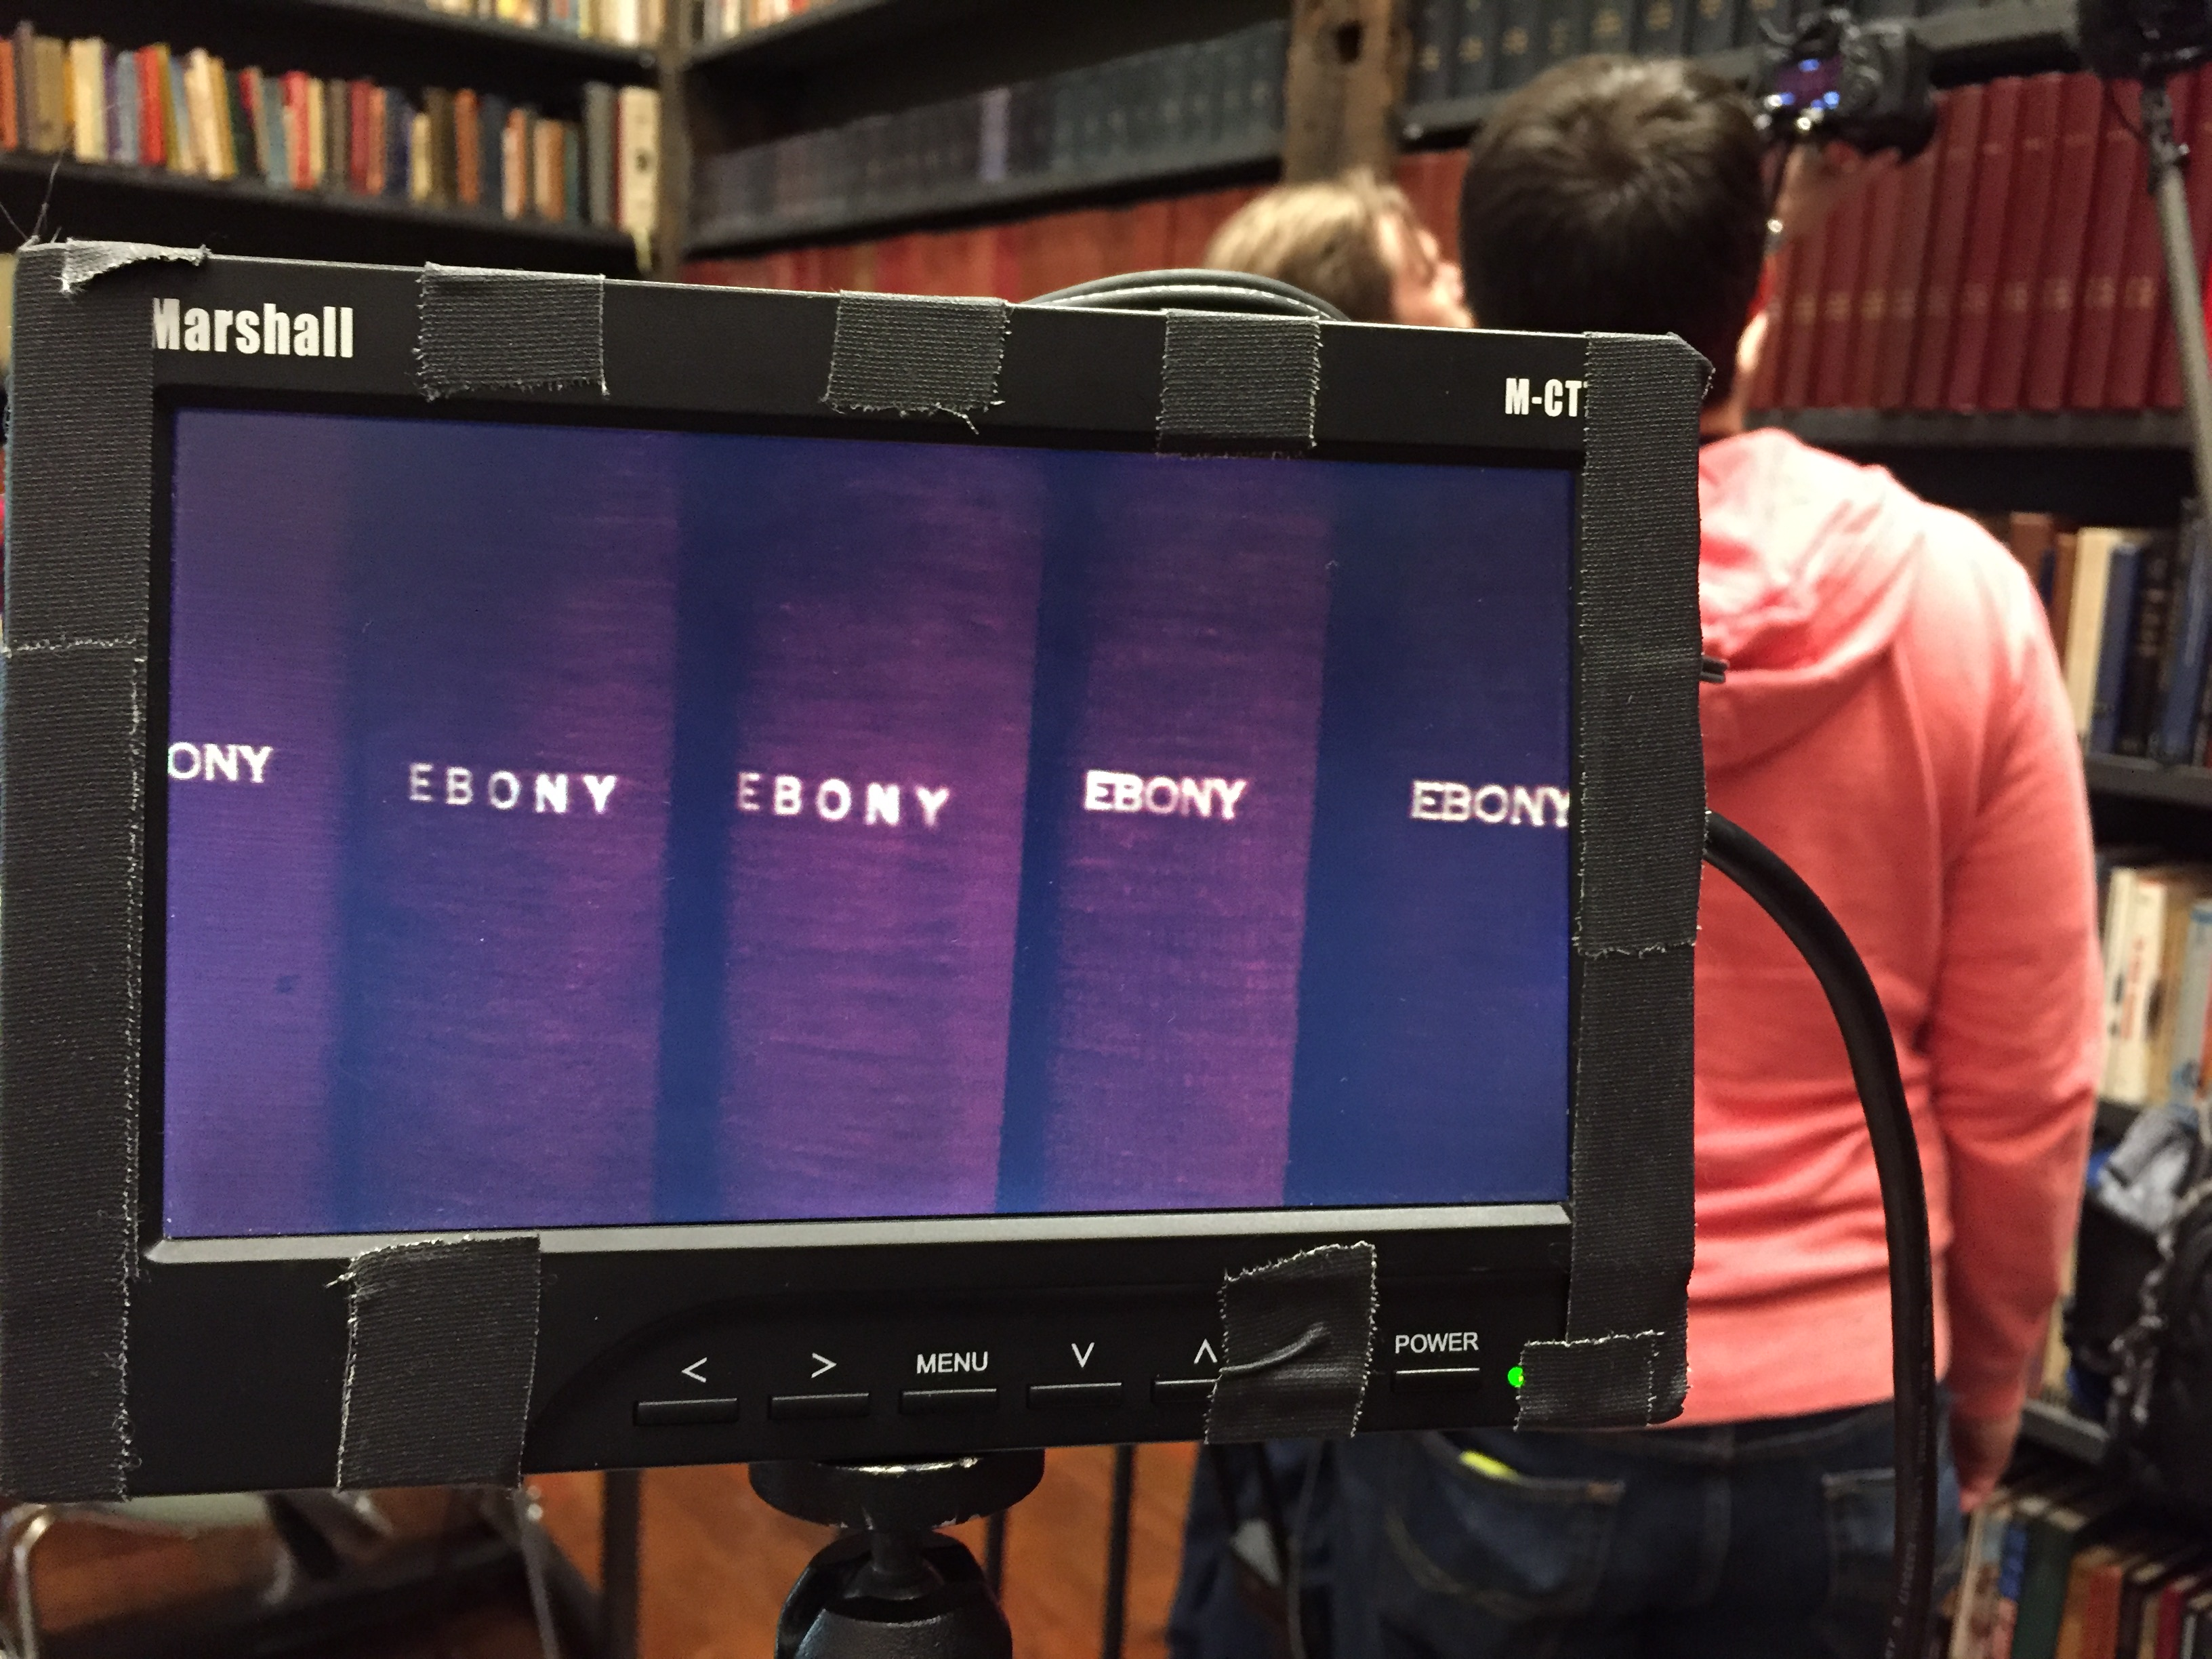 ART21 filming at Theaster Gates's Stony Island Arts Bank in Chicago, USA, 2016. Behind the scenes of ART21's series Art in the Twenty-First Century, Season 8, 2016. Photo: Brian Ashby. © ART21, Inc. 2016.